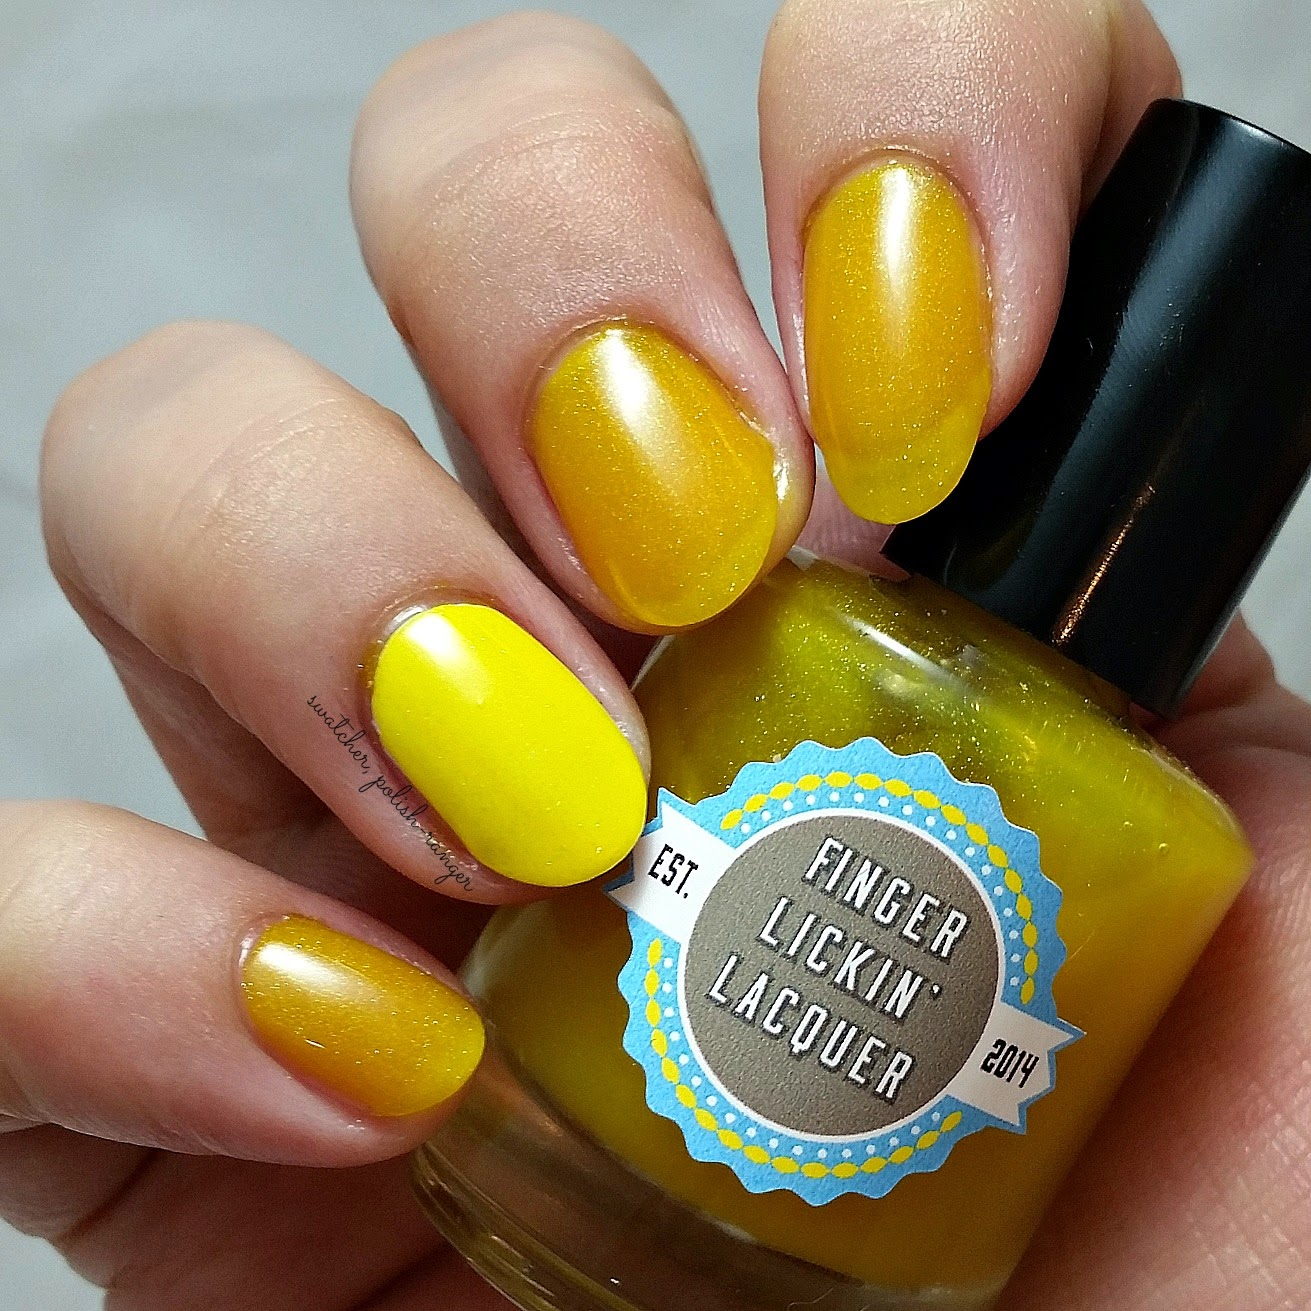 swatcher, polish-ranger | Finger Lickin Lacquer Harvest Moon swatch